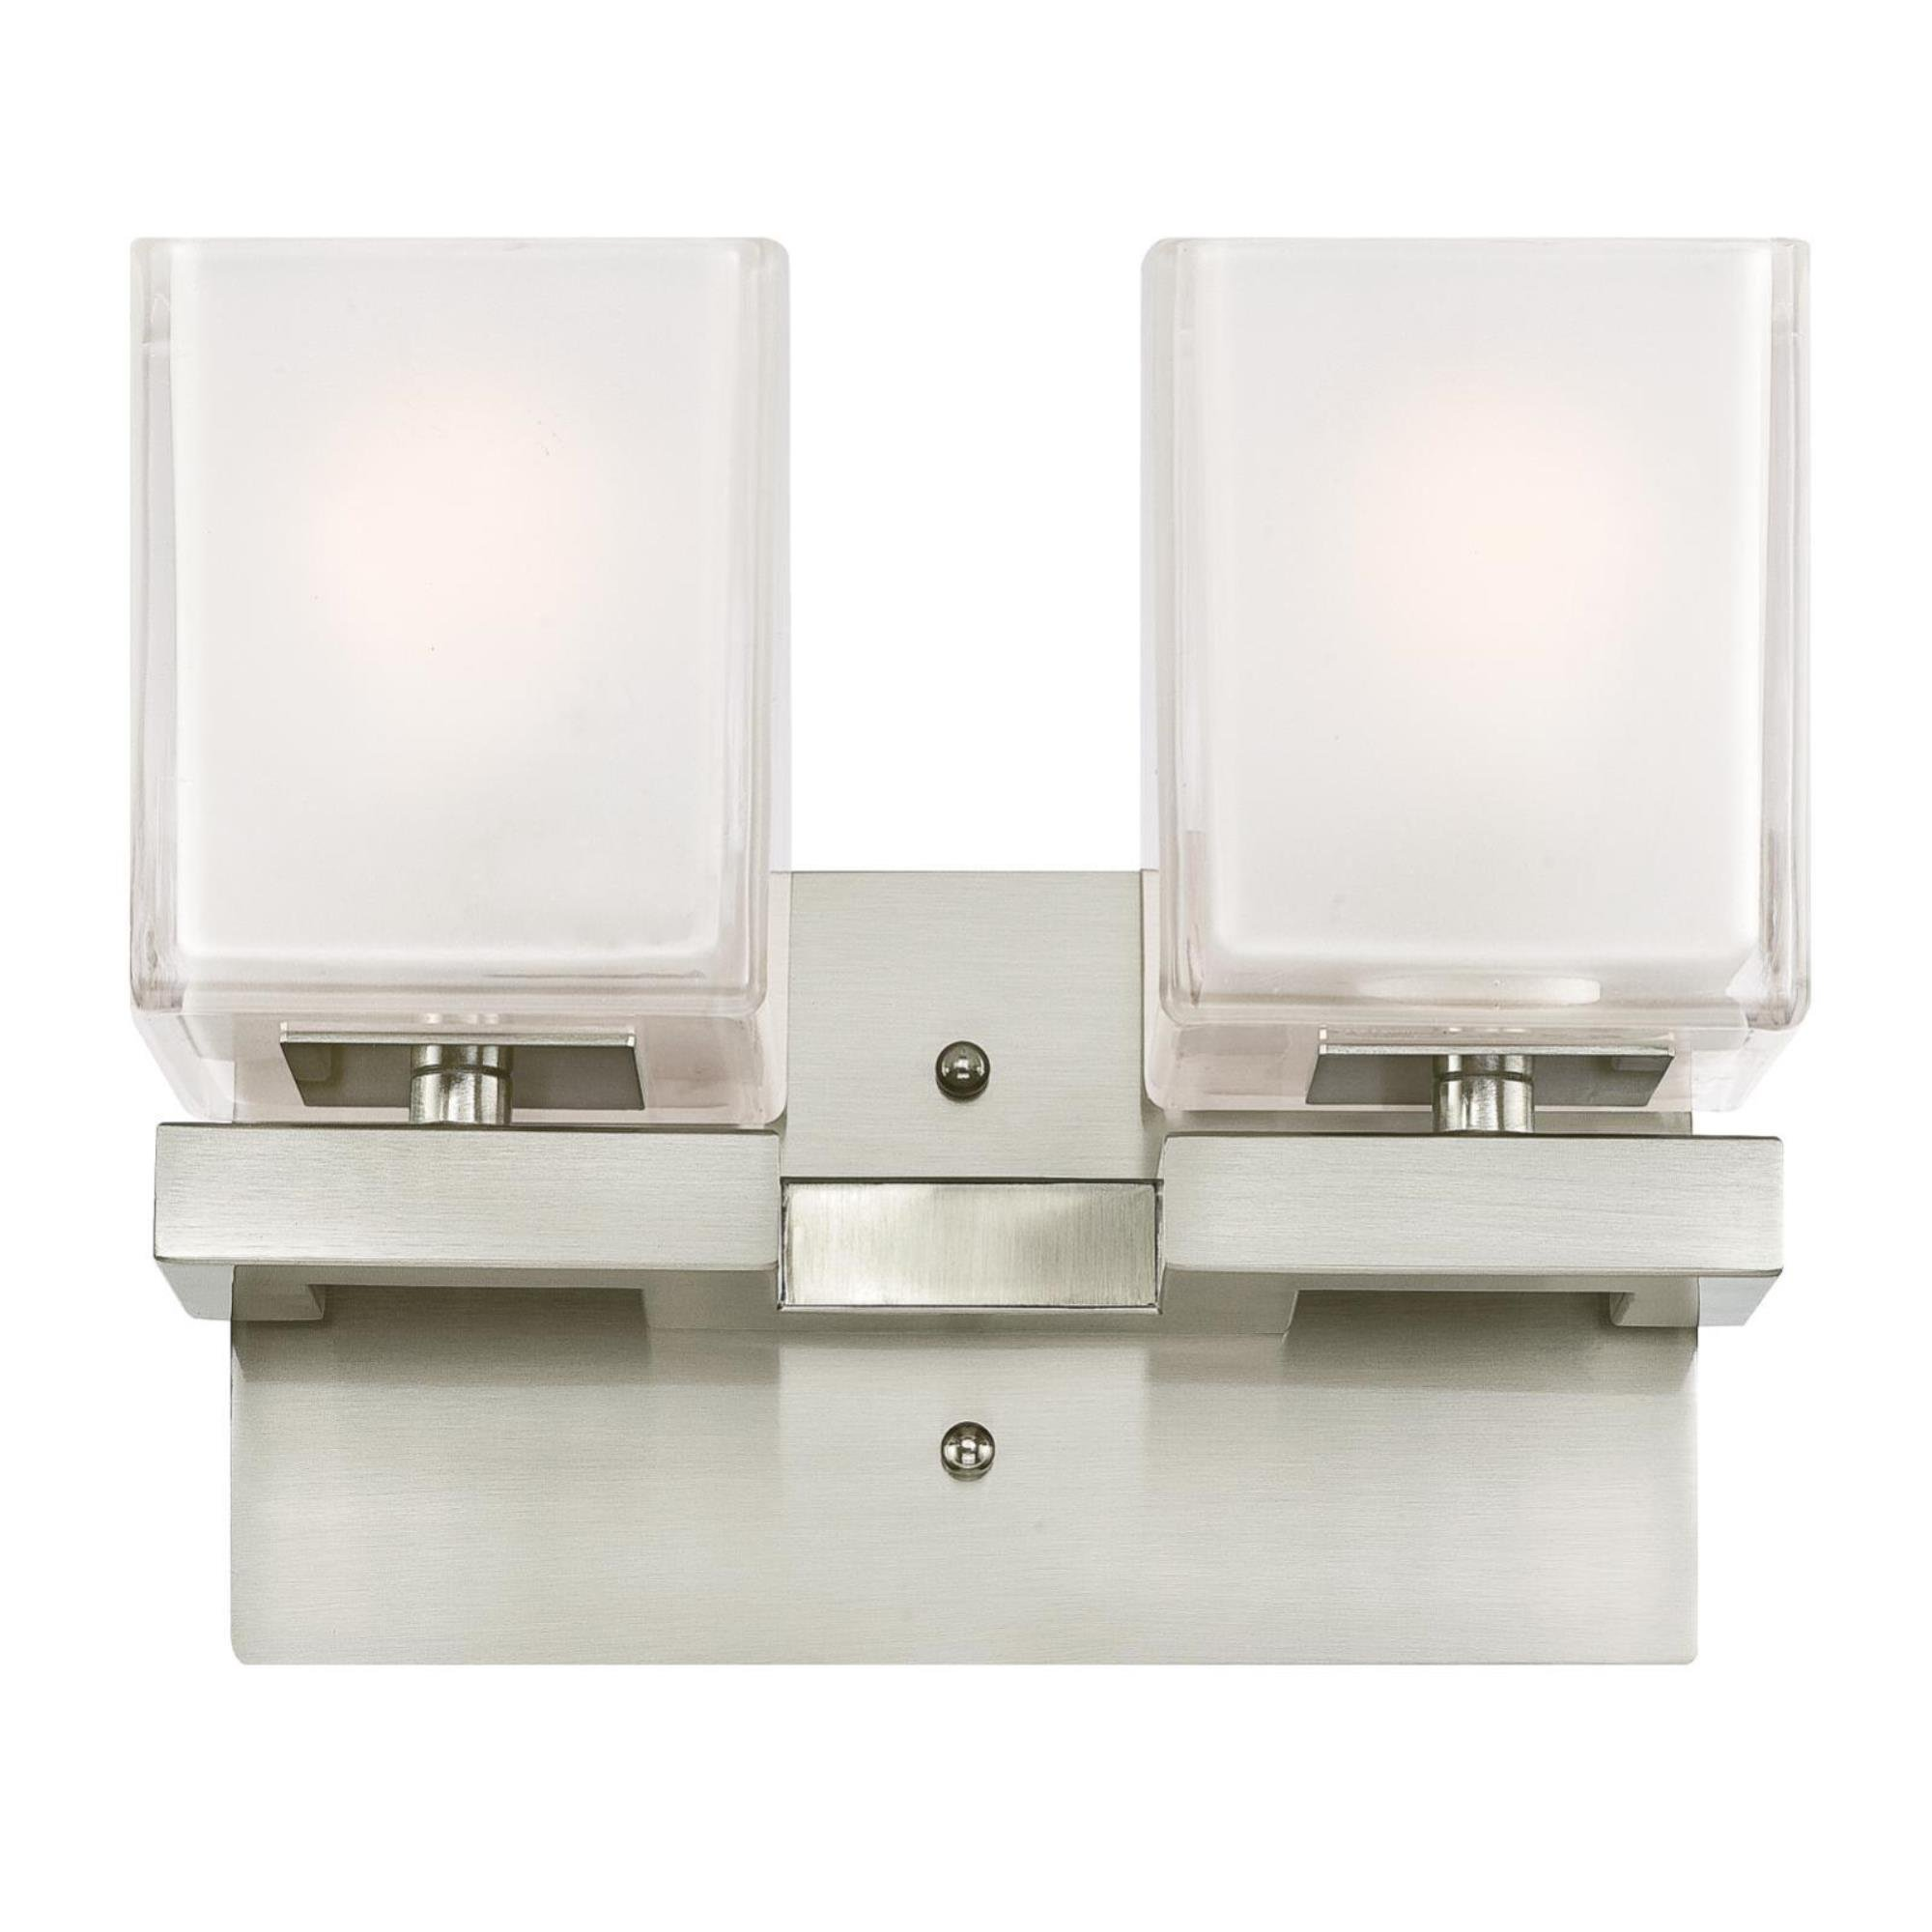 Westinghouse 6332300 Nyle Indoor Wall Fixture, Brushed Nickel Finish with Glazed Ice Block Glass, Two Light